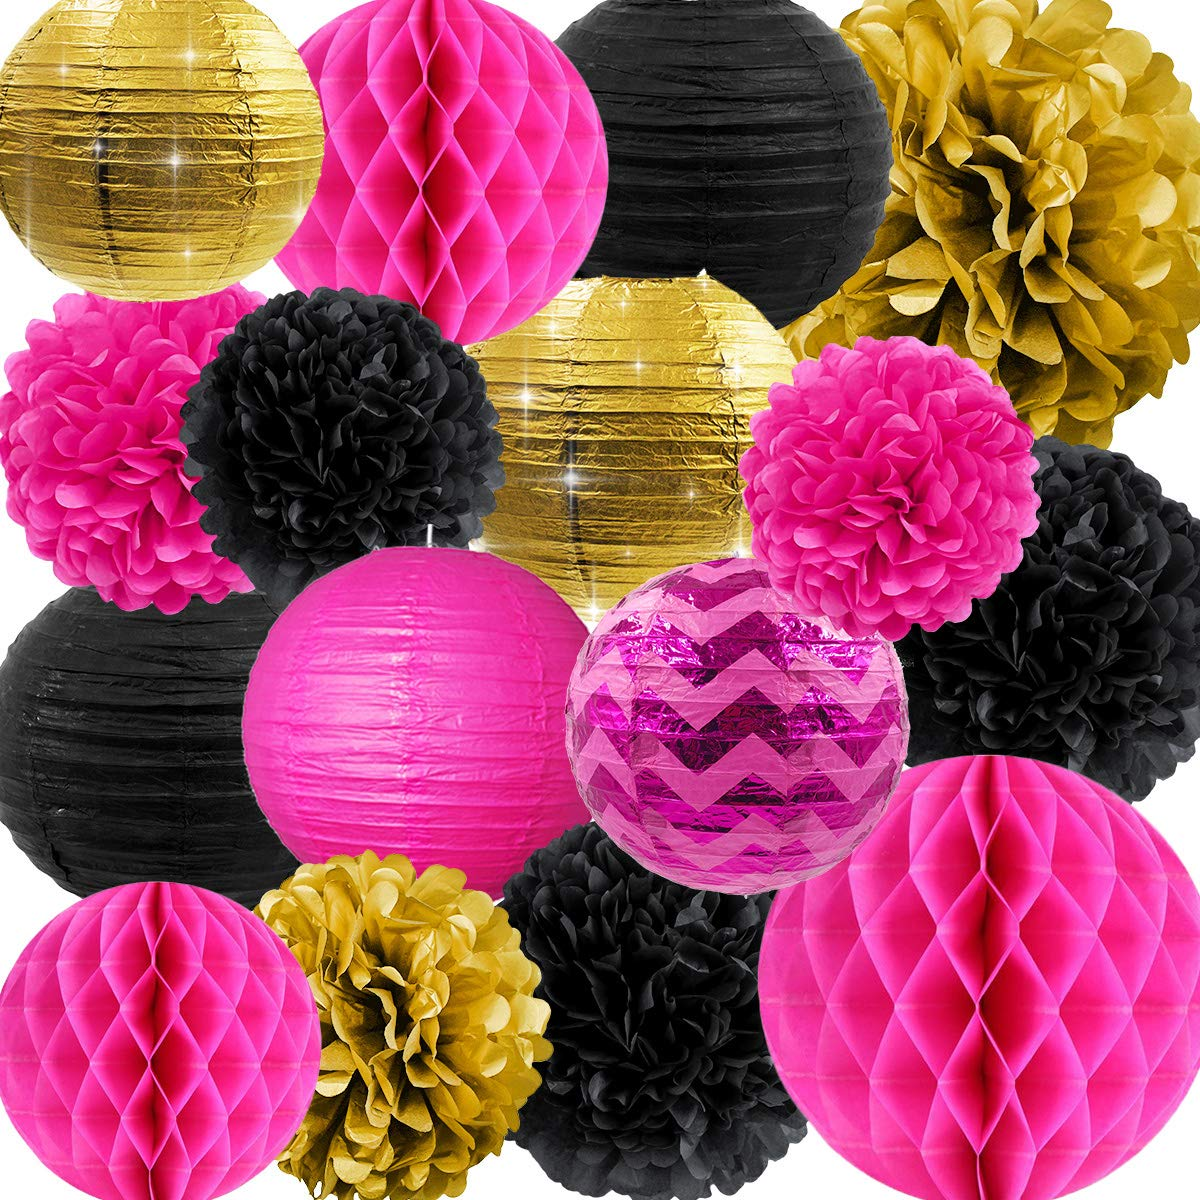 Pink And Black Party Decorations from m.media-amazon.com